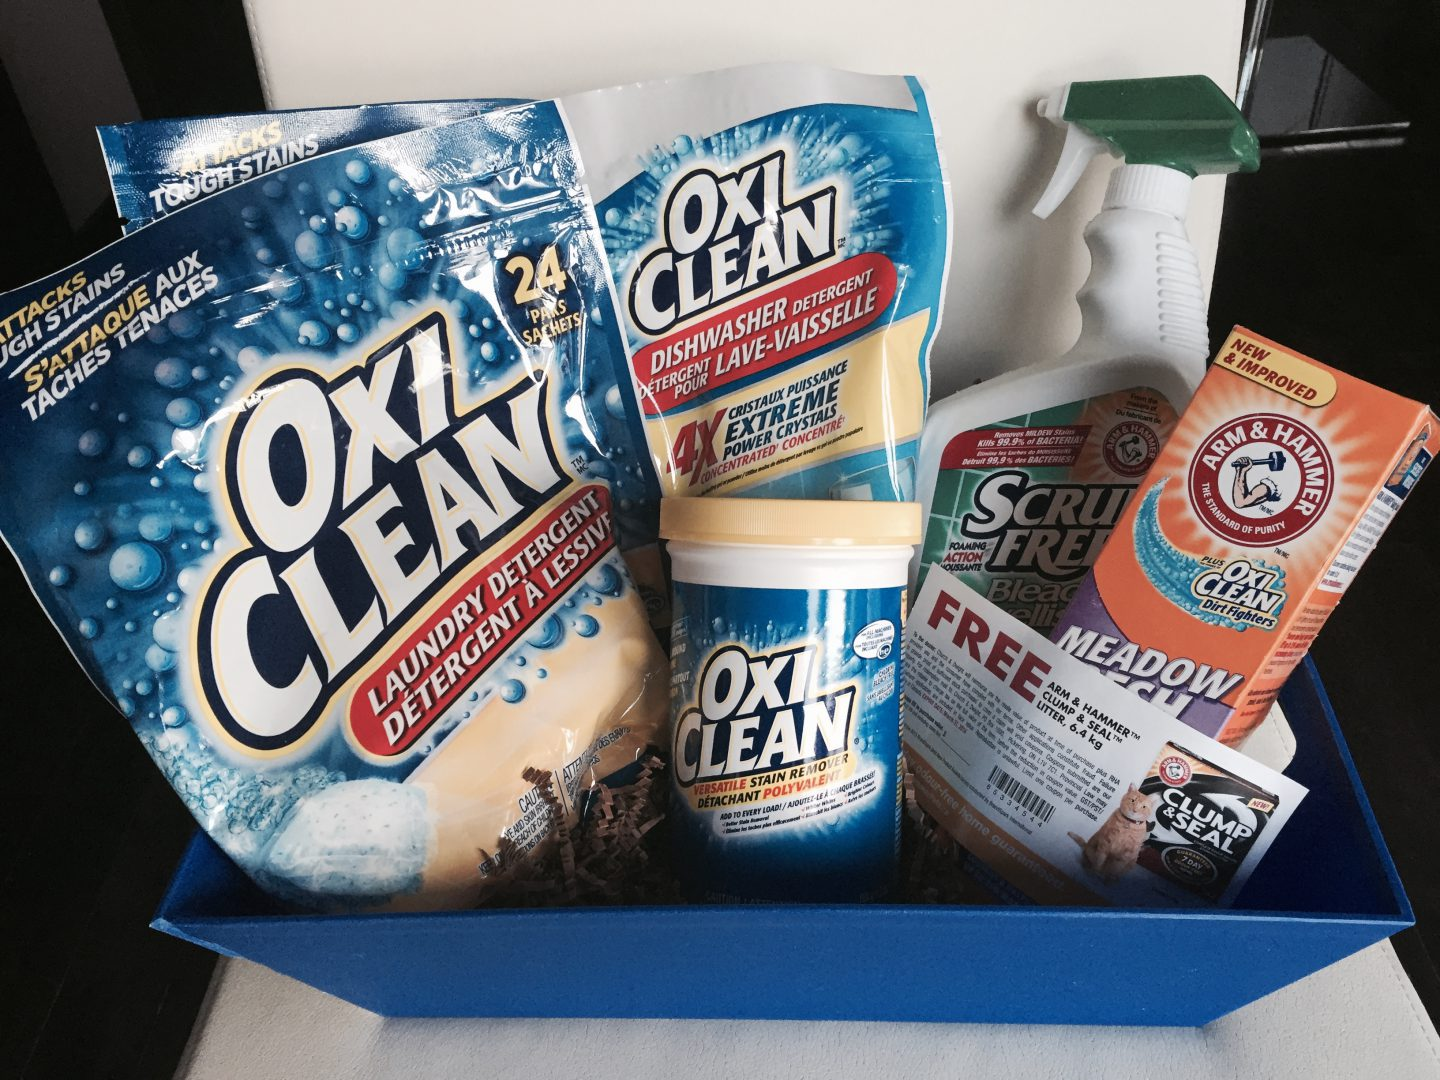 Spring Cleaning Prize Pack #Giveaway #ChurchAndDwight